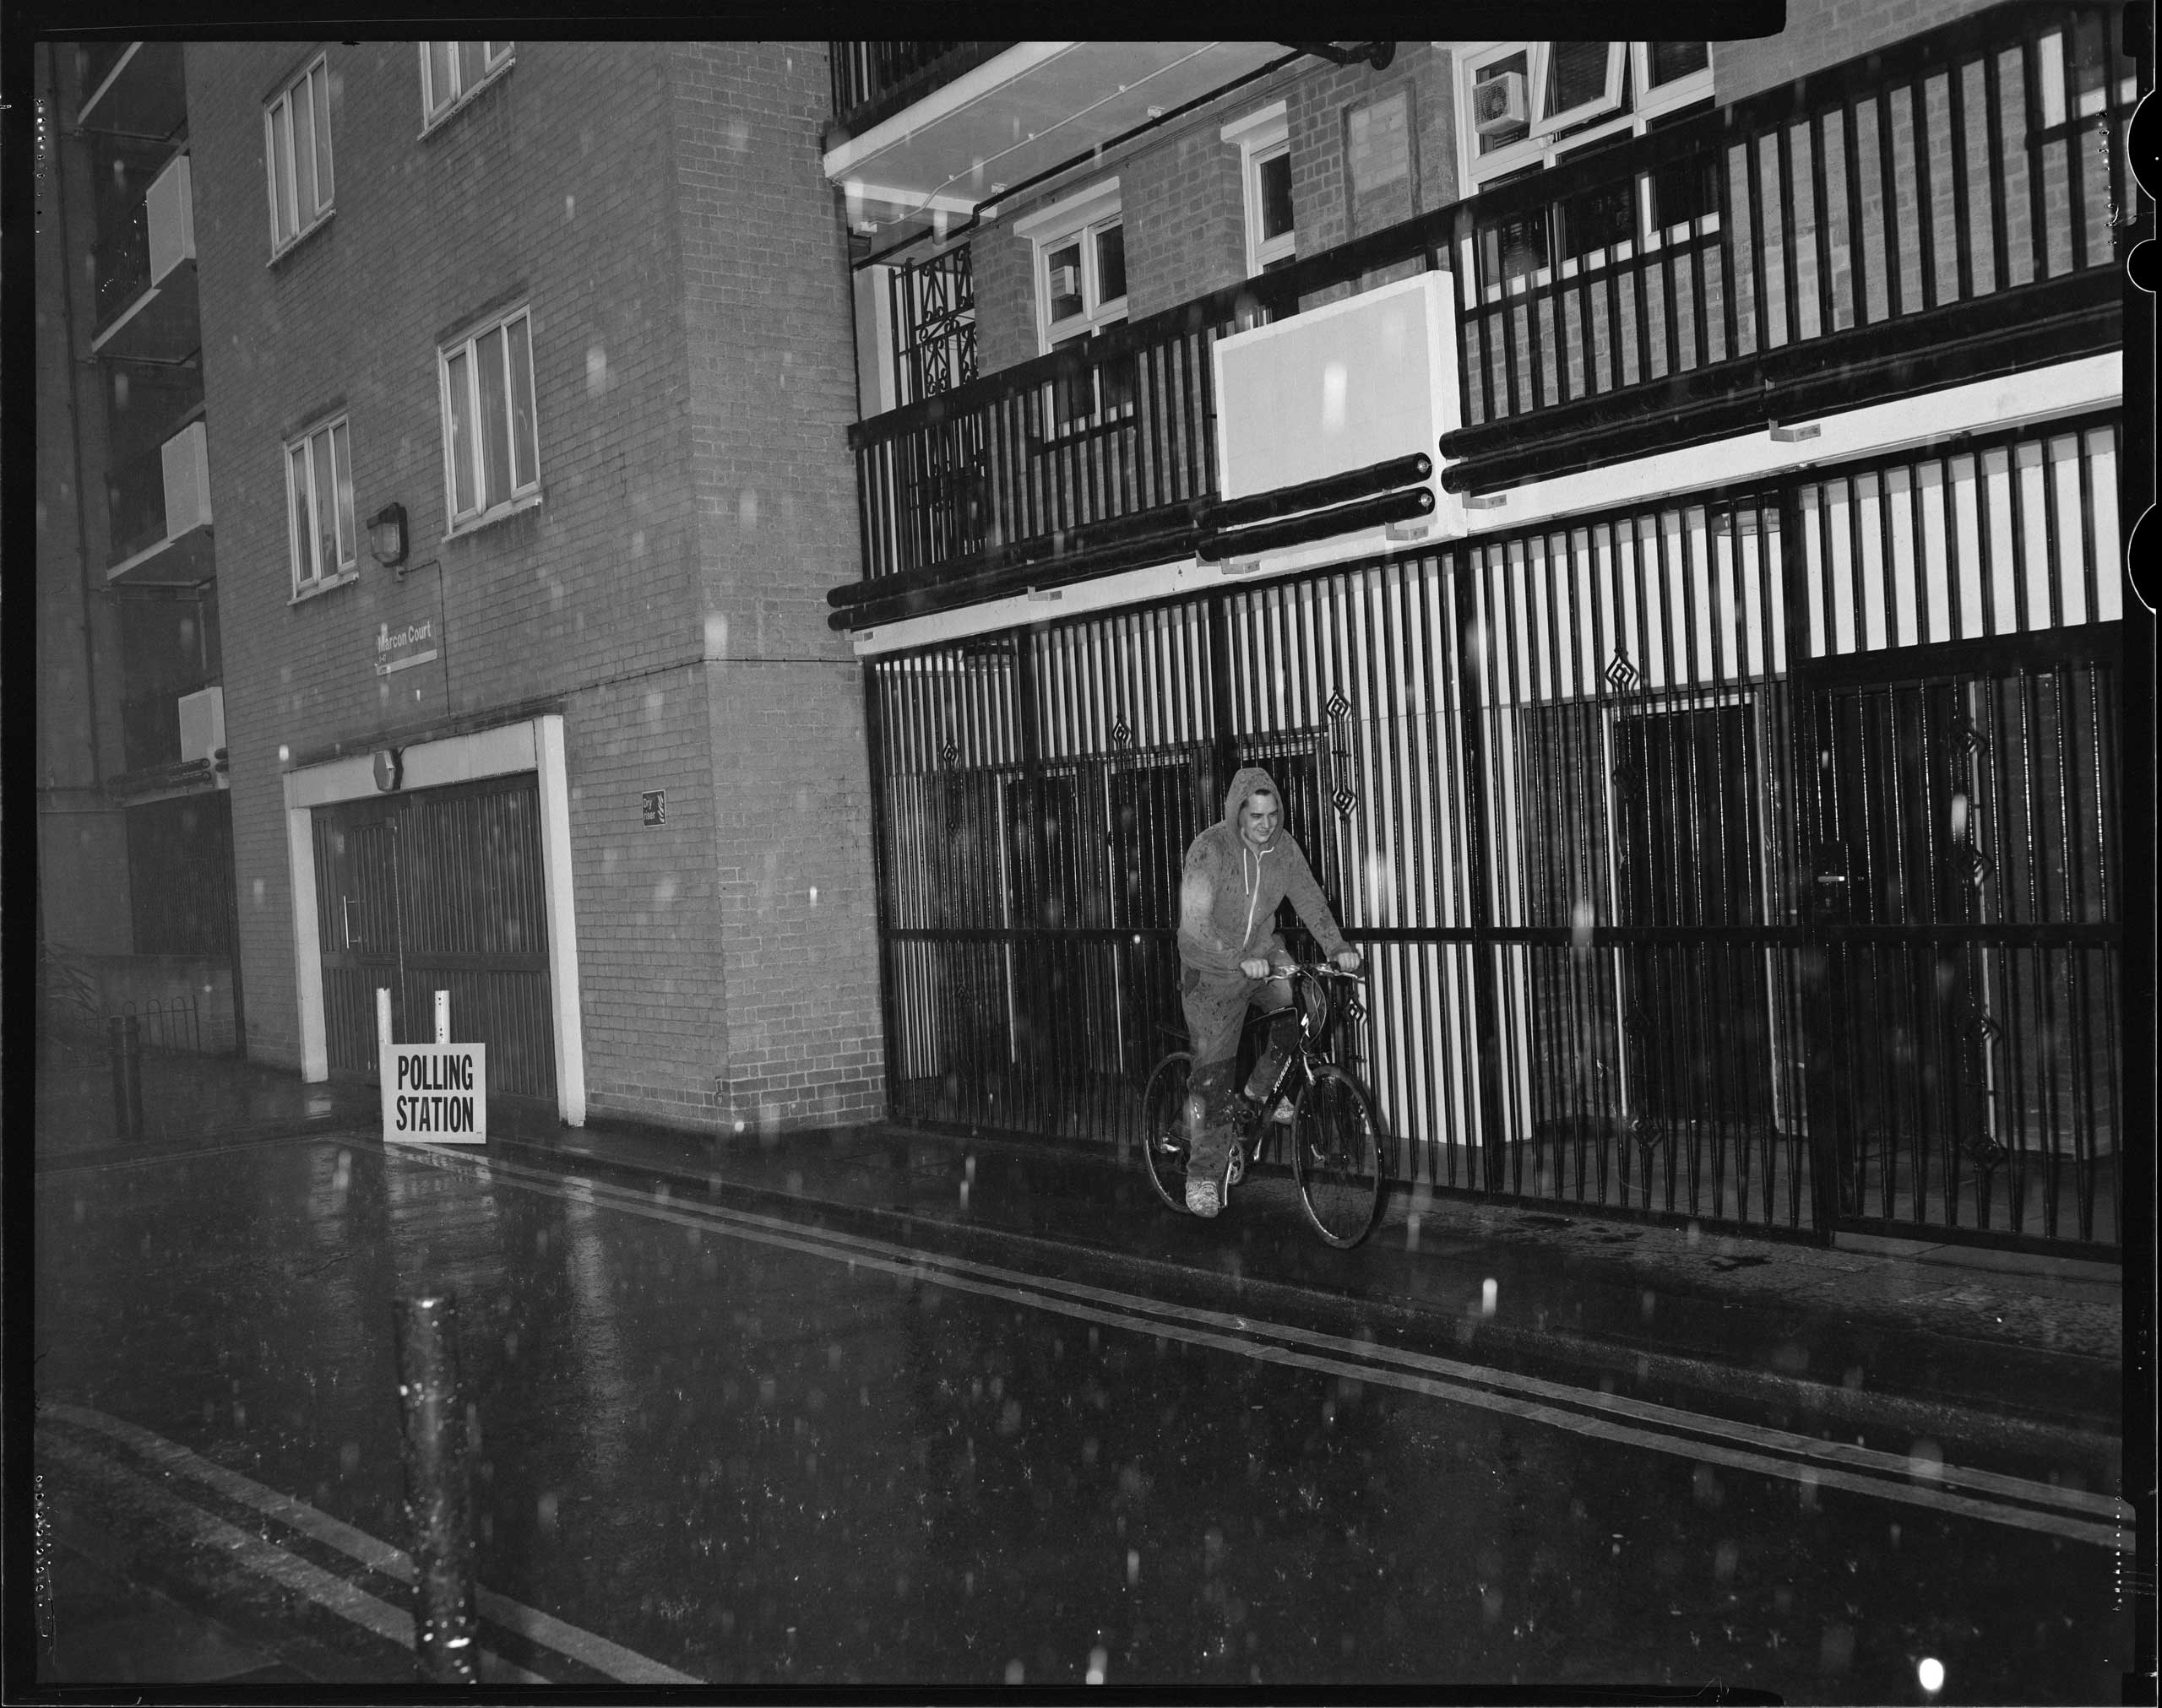 "<b>Olivia Arthur:</b> ""There was nobody in the polling station when I went to vote, probably (hopefully I thought) because of the torrential rain coming down outside. 'Are you documenting the determination to vote?!' shouted a passer-by. The moment seemed friendly, light and very British. I went off feeling ultimately positive and so I was devastated this morning to wake up to the news that we had collectively made this huge, stupid, irreversible decision.""                                                                                                         London, UK, June 23, 2016."